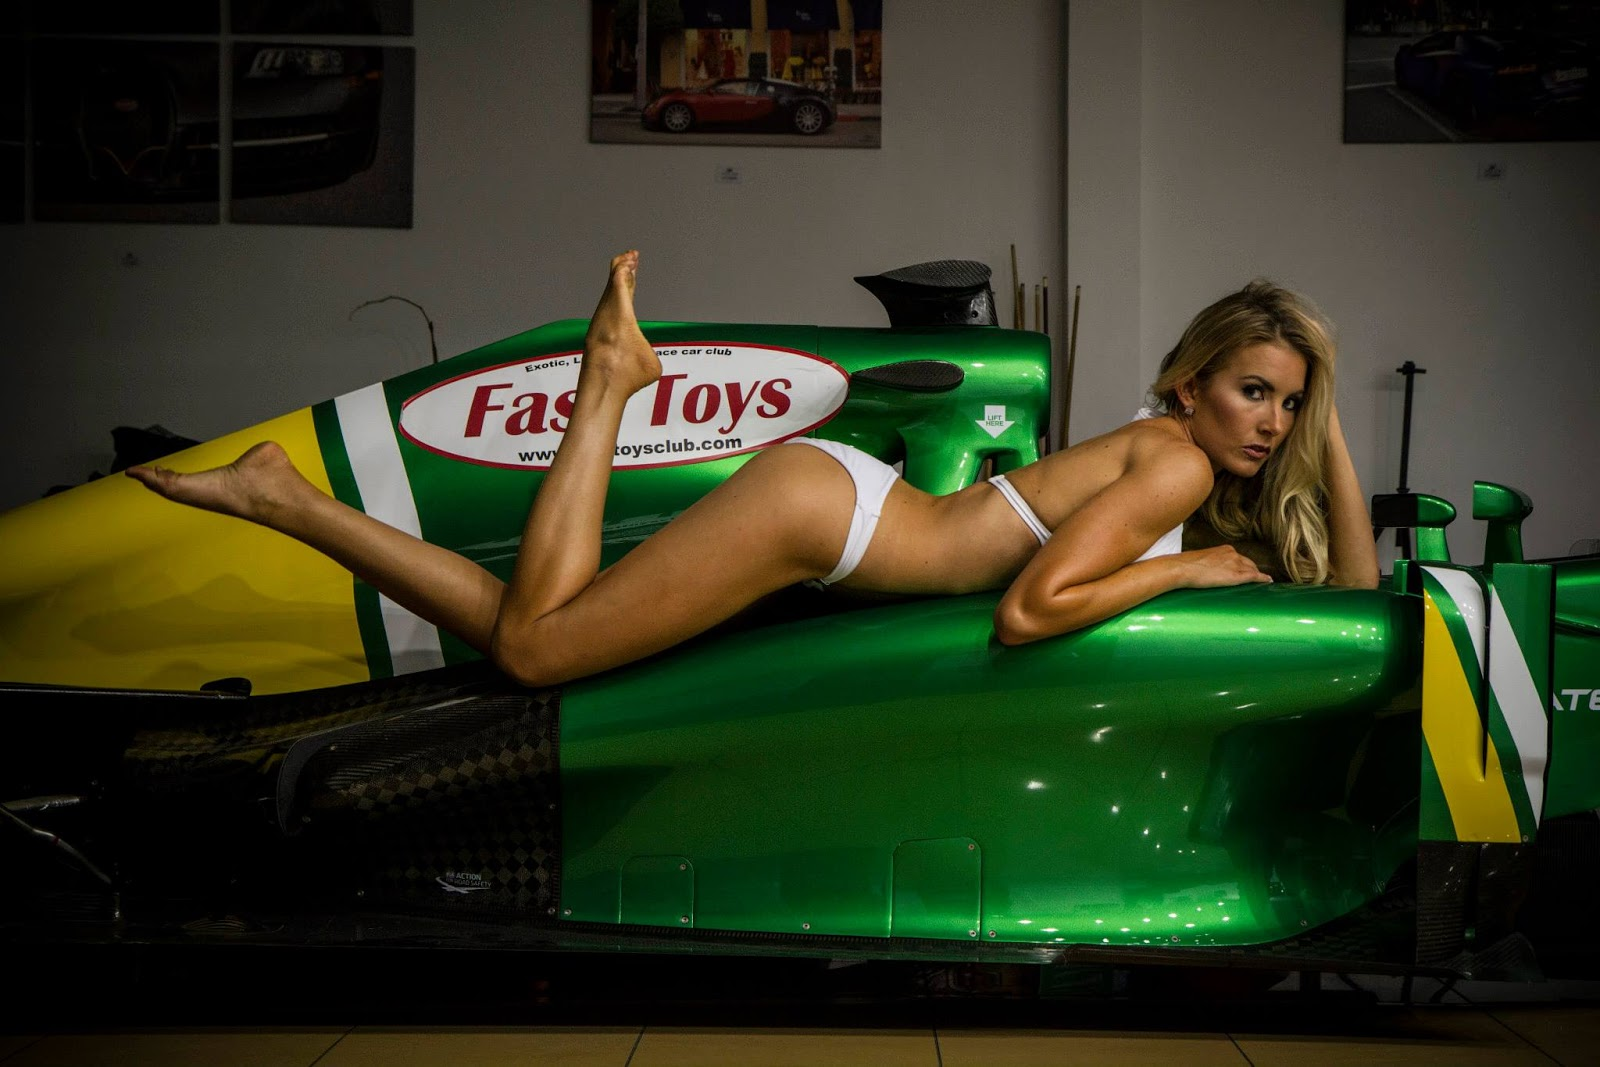 SouLSteer.com: Fast Toys shoots Christina Riordan in bikini with 2013  Caterham CT03-05 F1 car